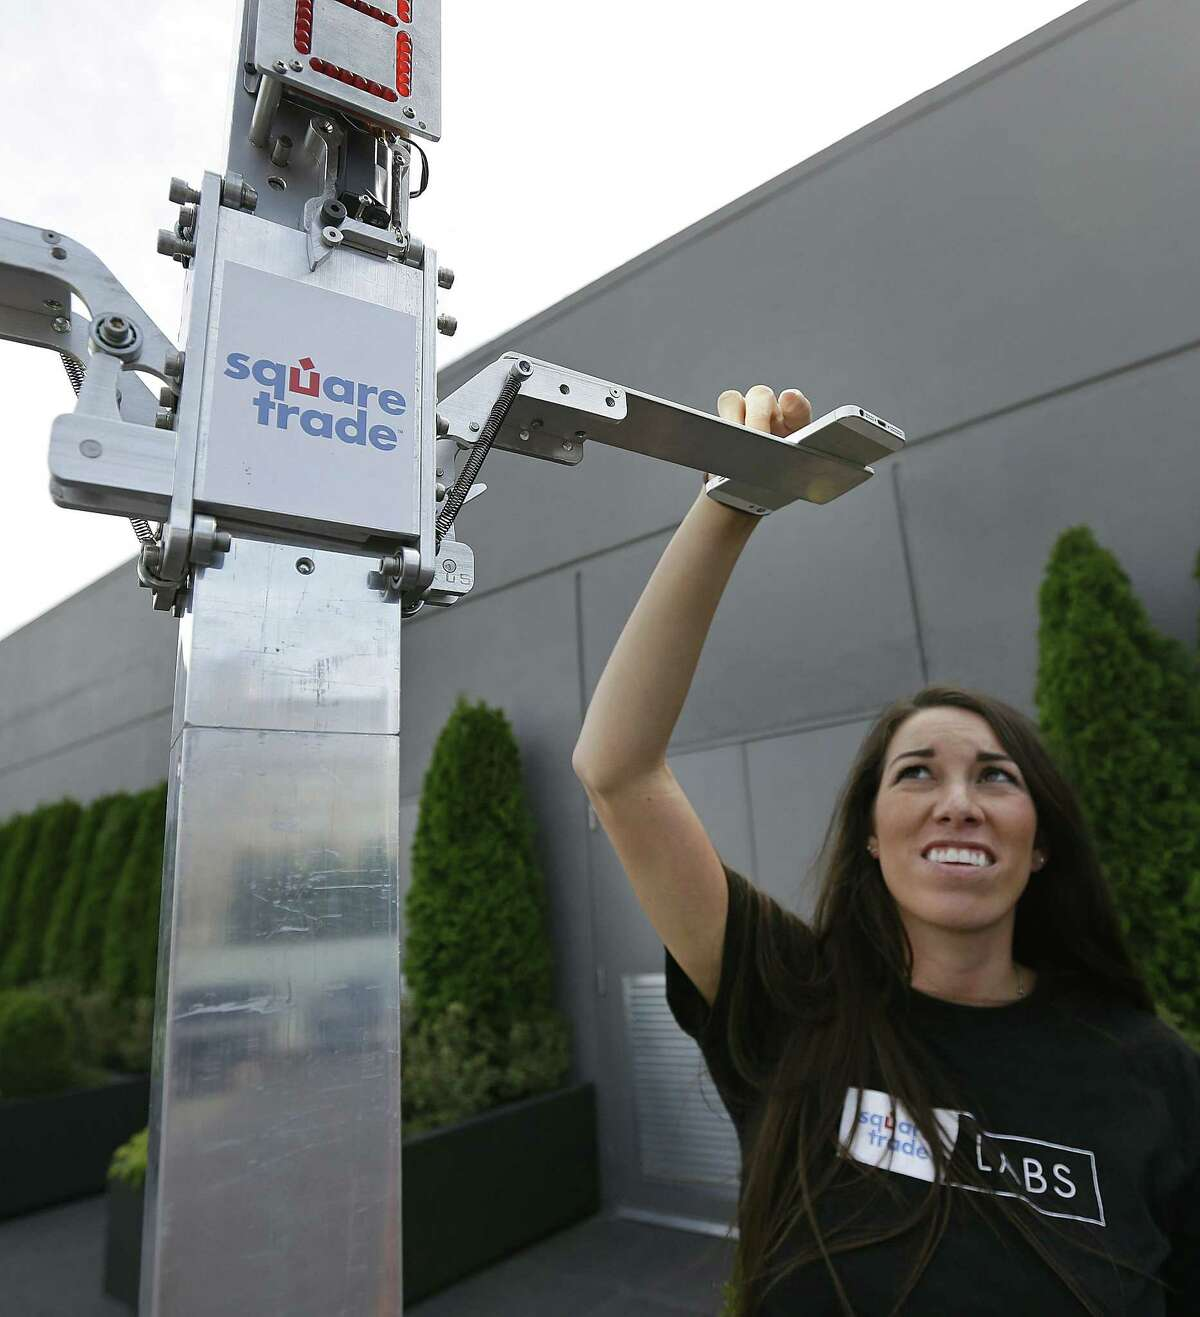 Chelsea Wickline, associate creative director at SquareTrade, places a phone atop a DropBot, a robot used to test the durability of a phone, at SquareTrade offices in San Francisco.